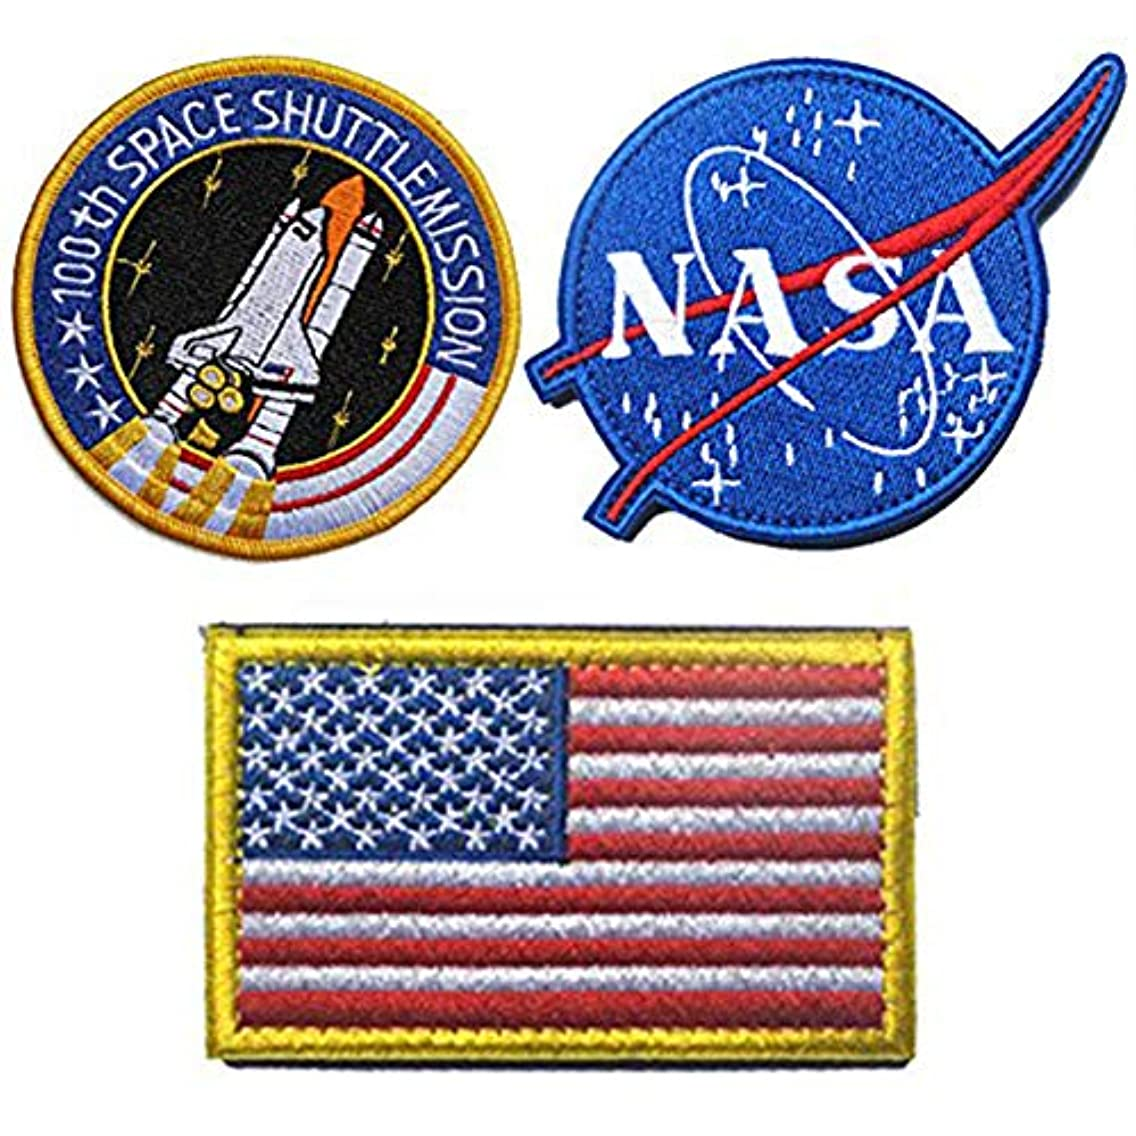 Tactical Flag Patch - Combination USA NASA Patch Embroidered Morale Lot Military Embroidered Patches (3 Pcs)